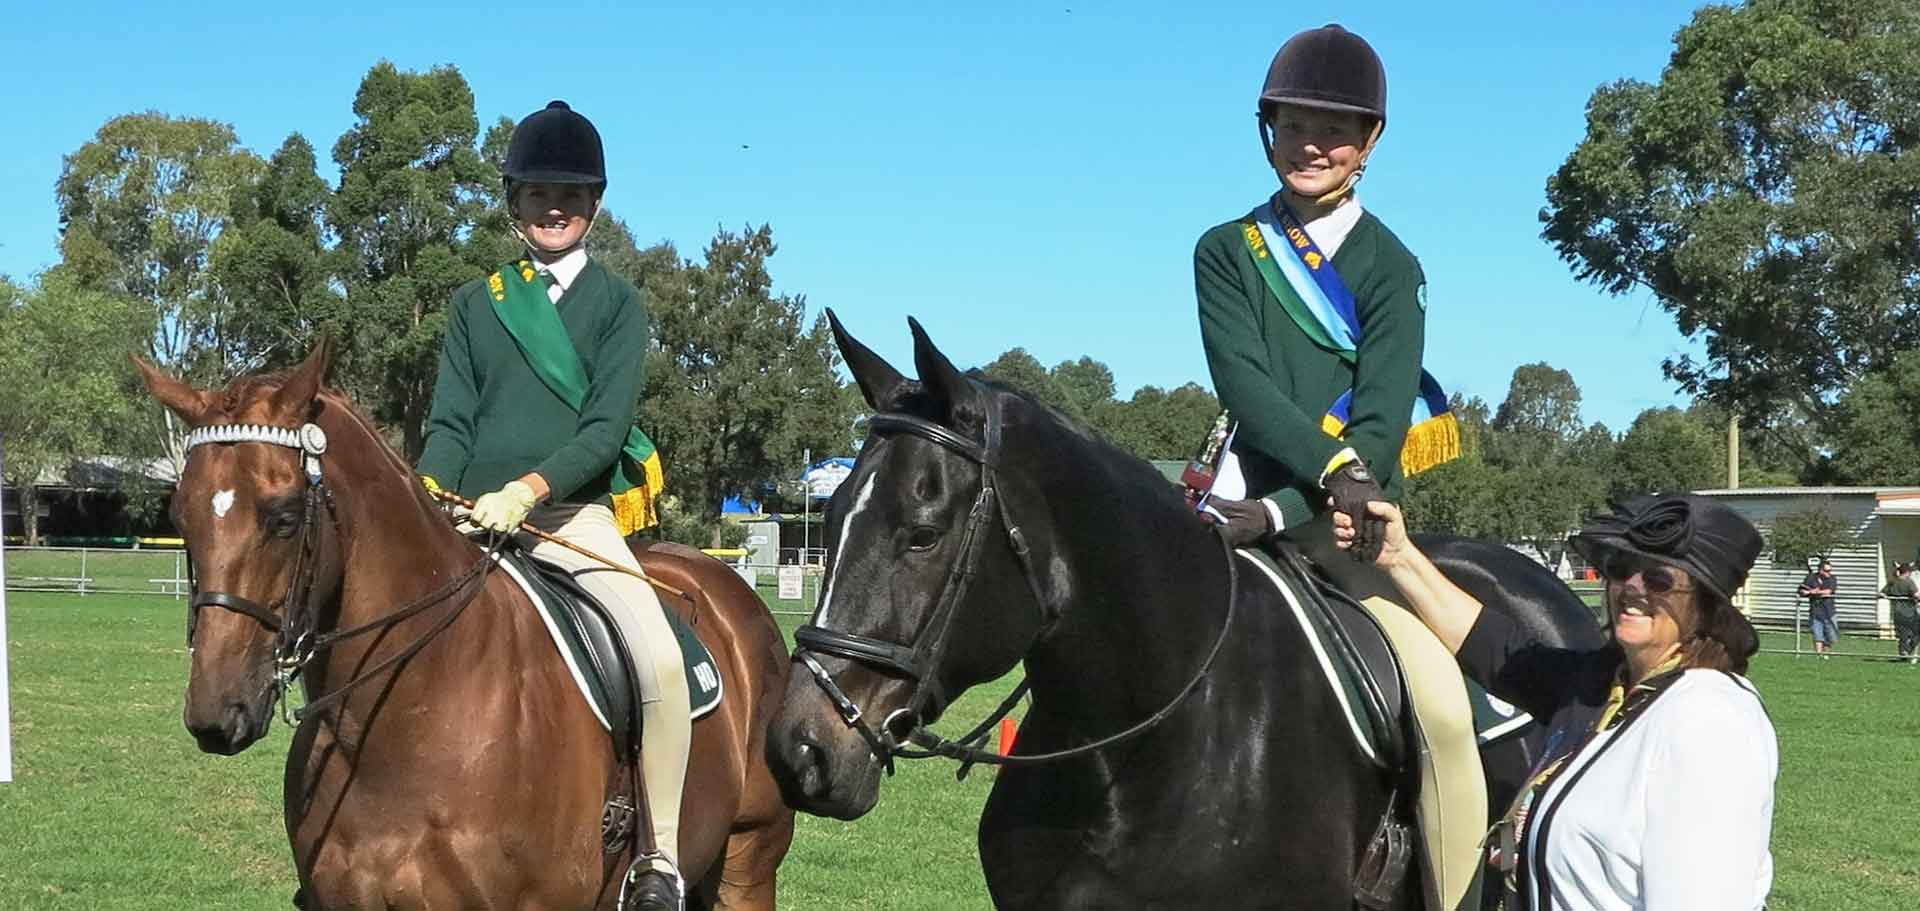 Hawkesbury Winter Horse Show